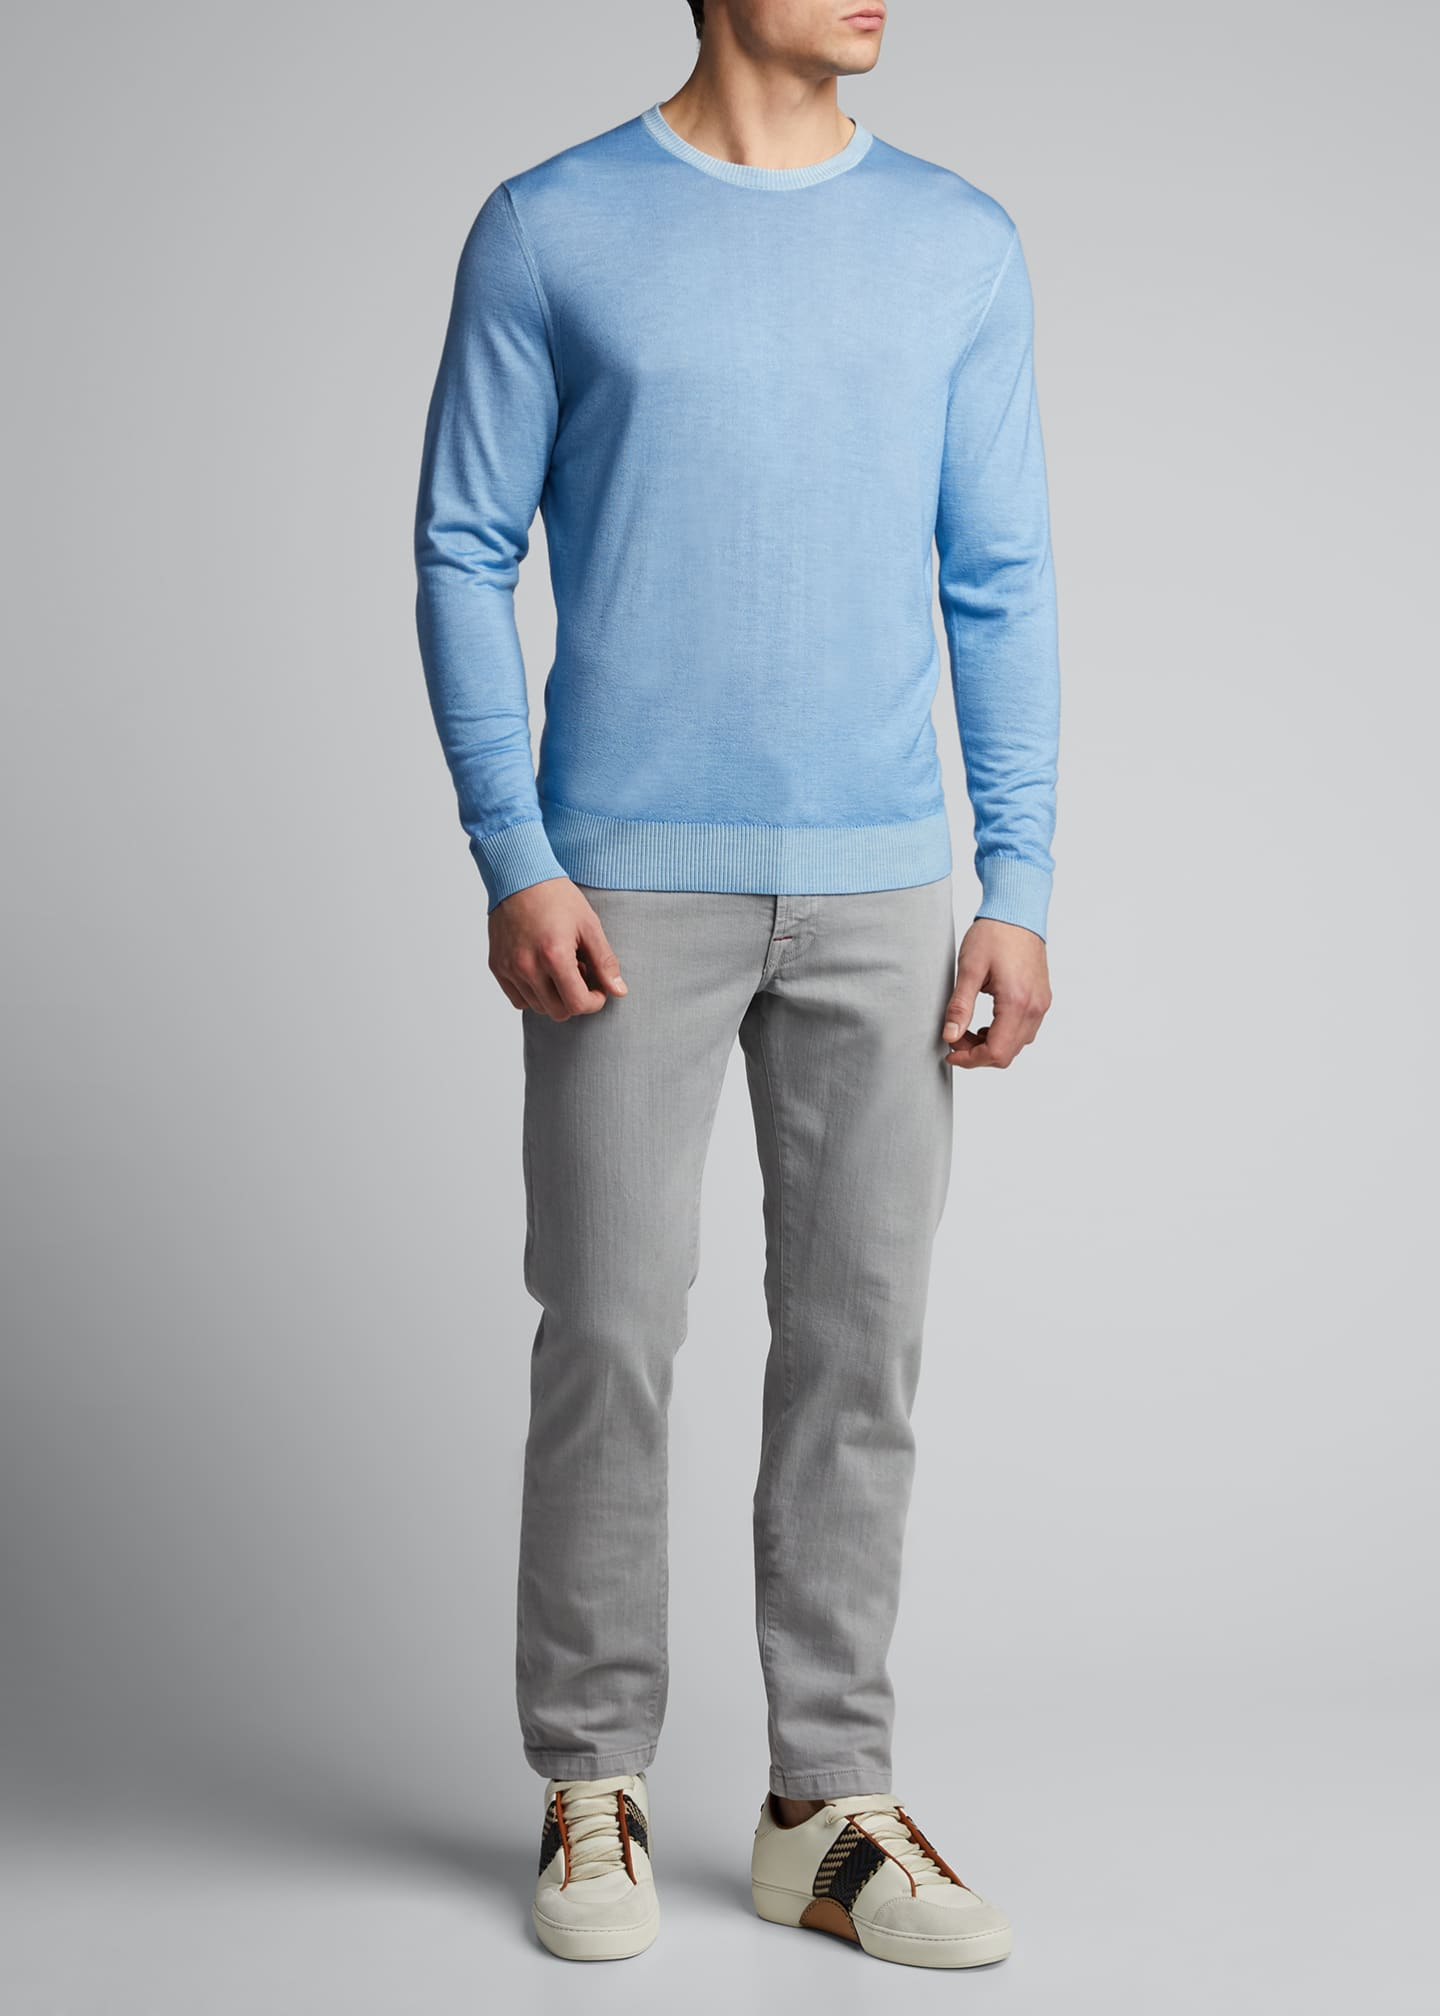 Image 1 of 5: Men's Washed Cashmere-Cotton Sweater